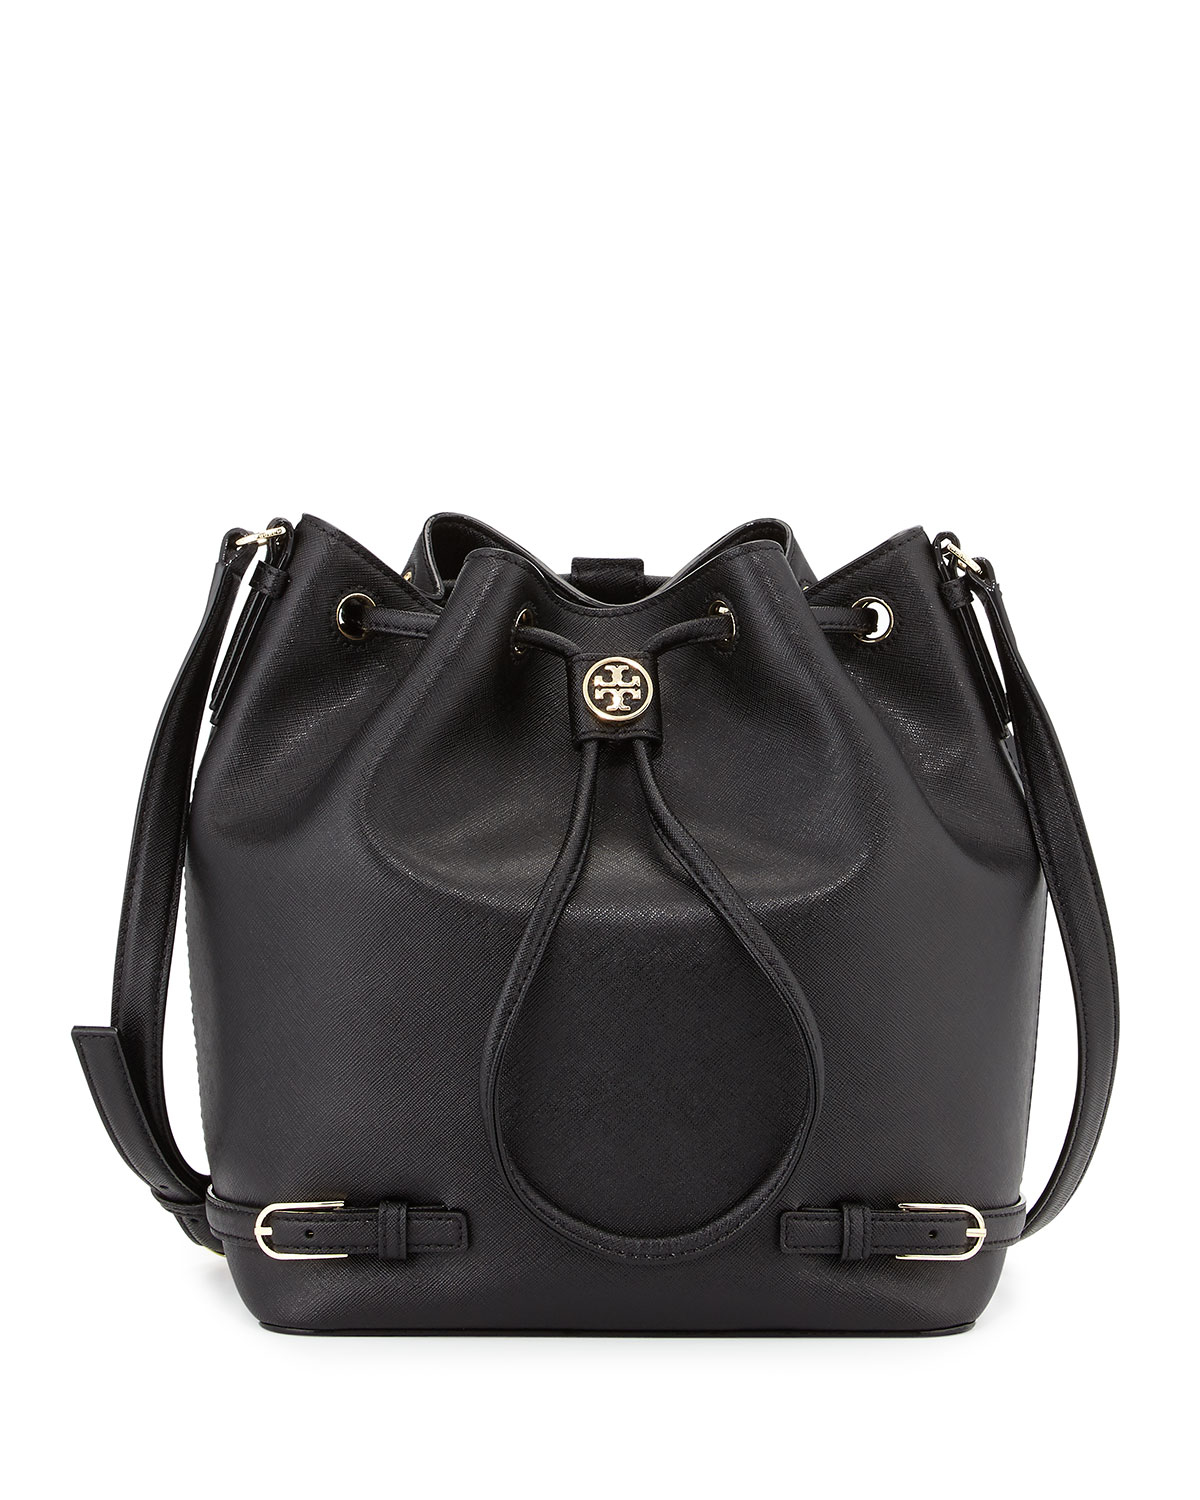 177a37e36e2 Lyst - Tory Burch Robinson Leather Bucket Bag in Black